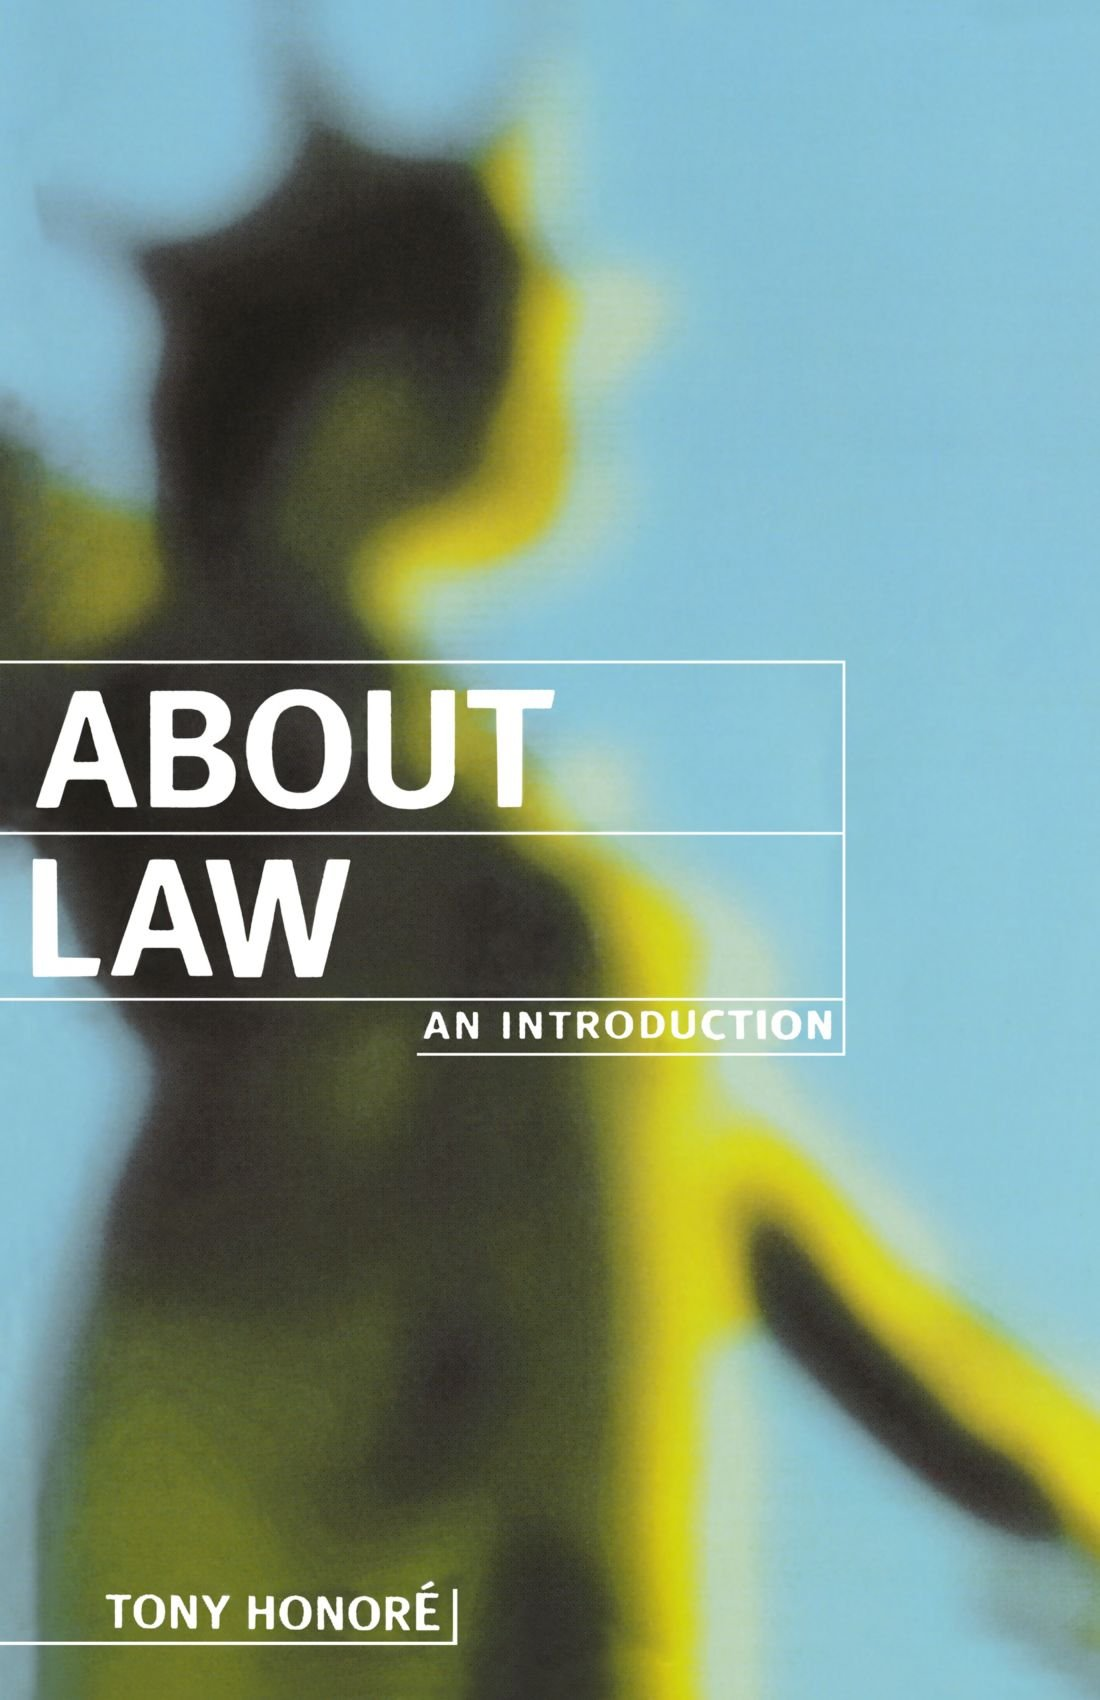 About Law: An Introduction (Clarendon Law Series): Amazon.co.uk: Tony  Honoré: 9780198763888: Books